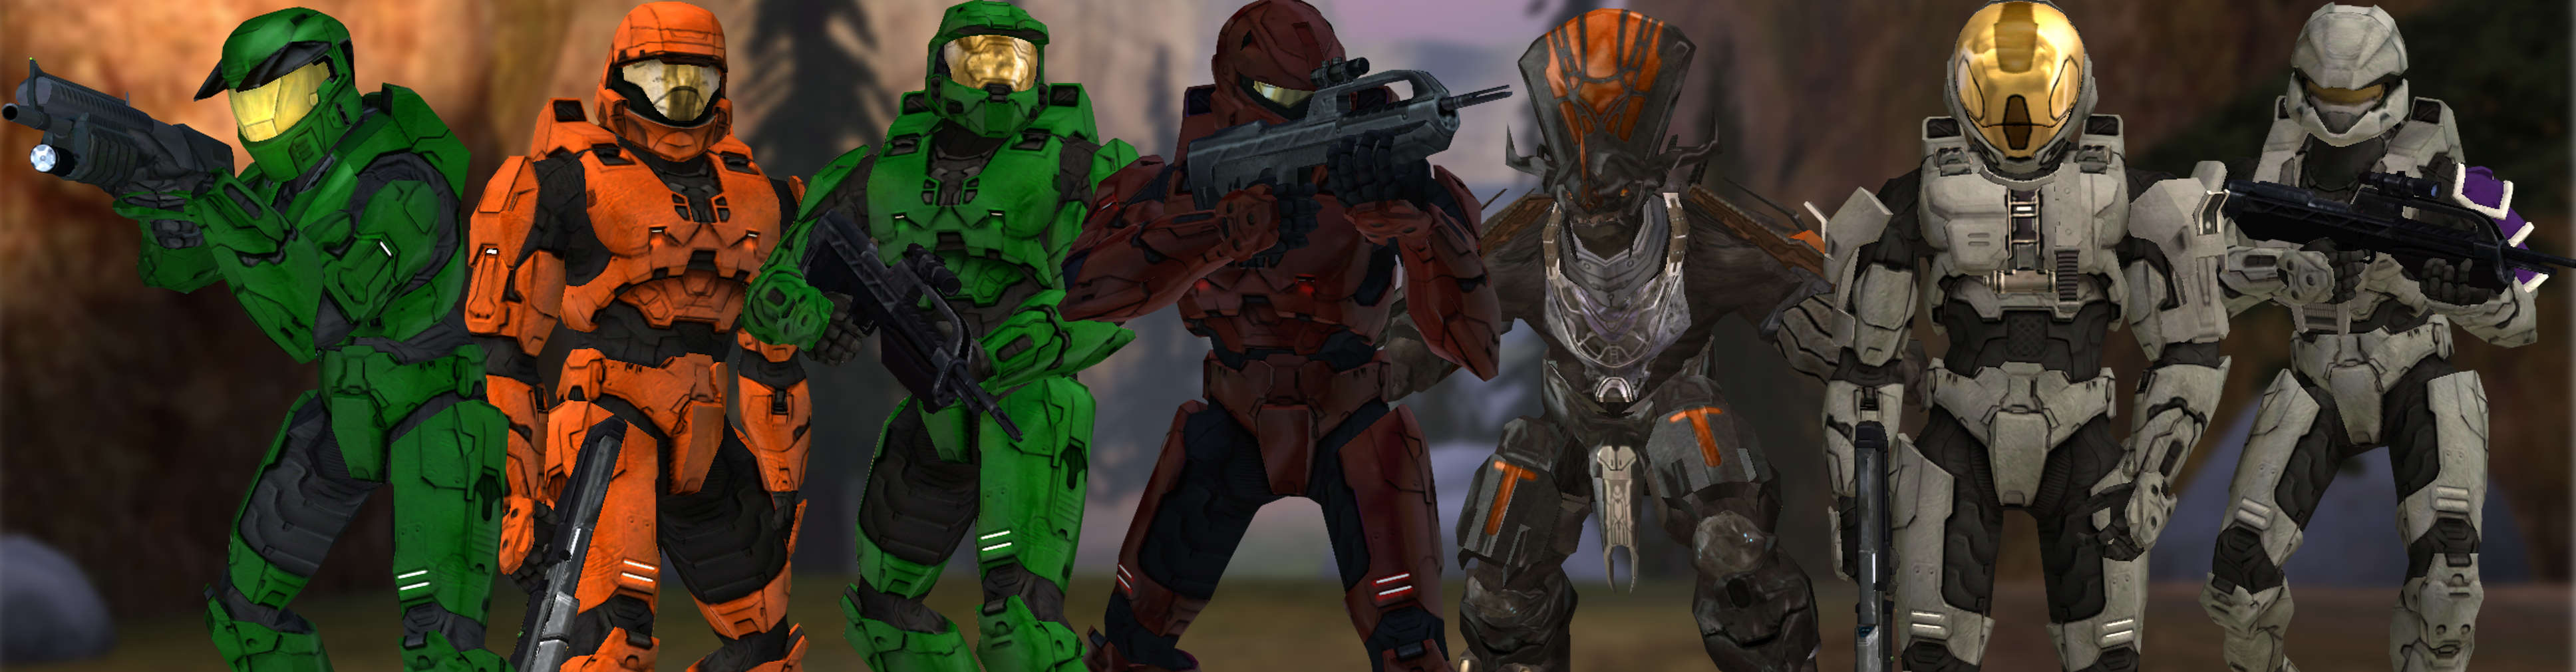 Halo ce for Halo ce portent 2 firefight